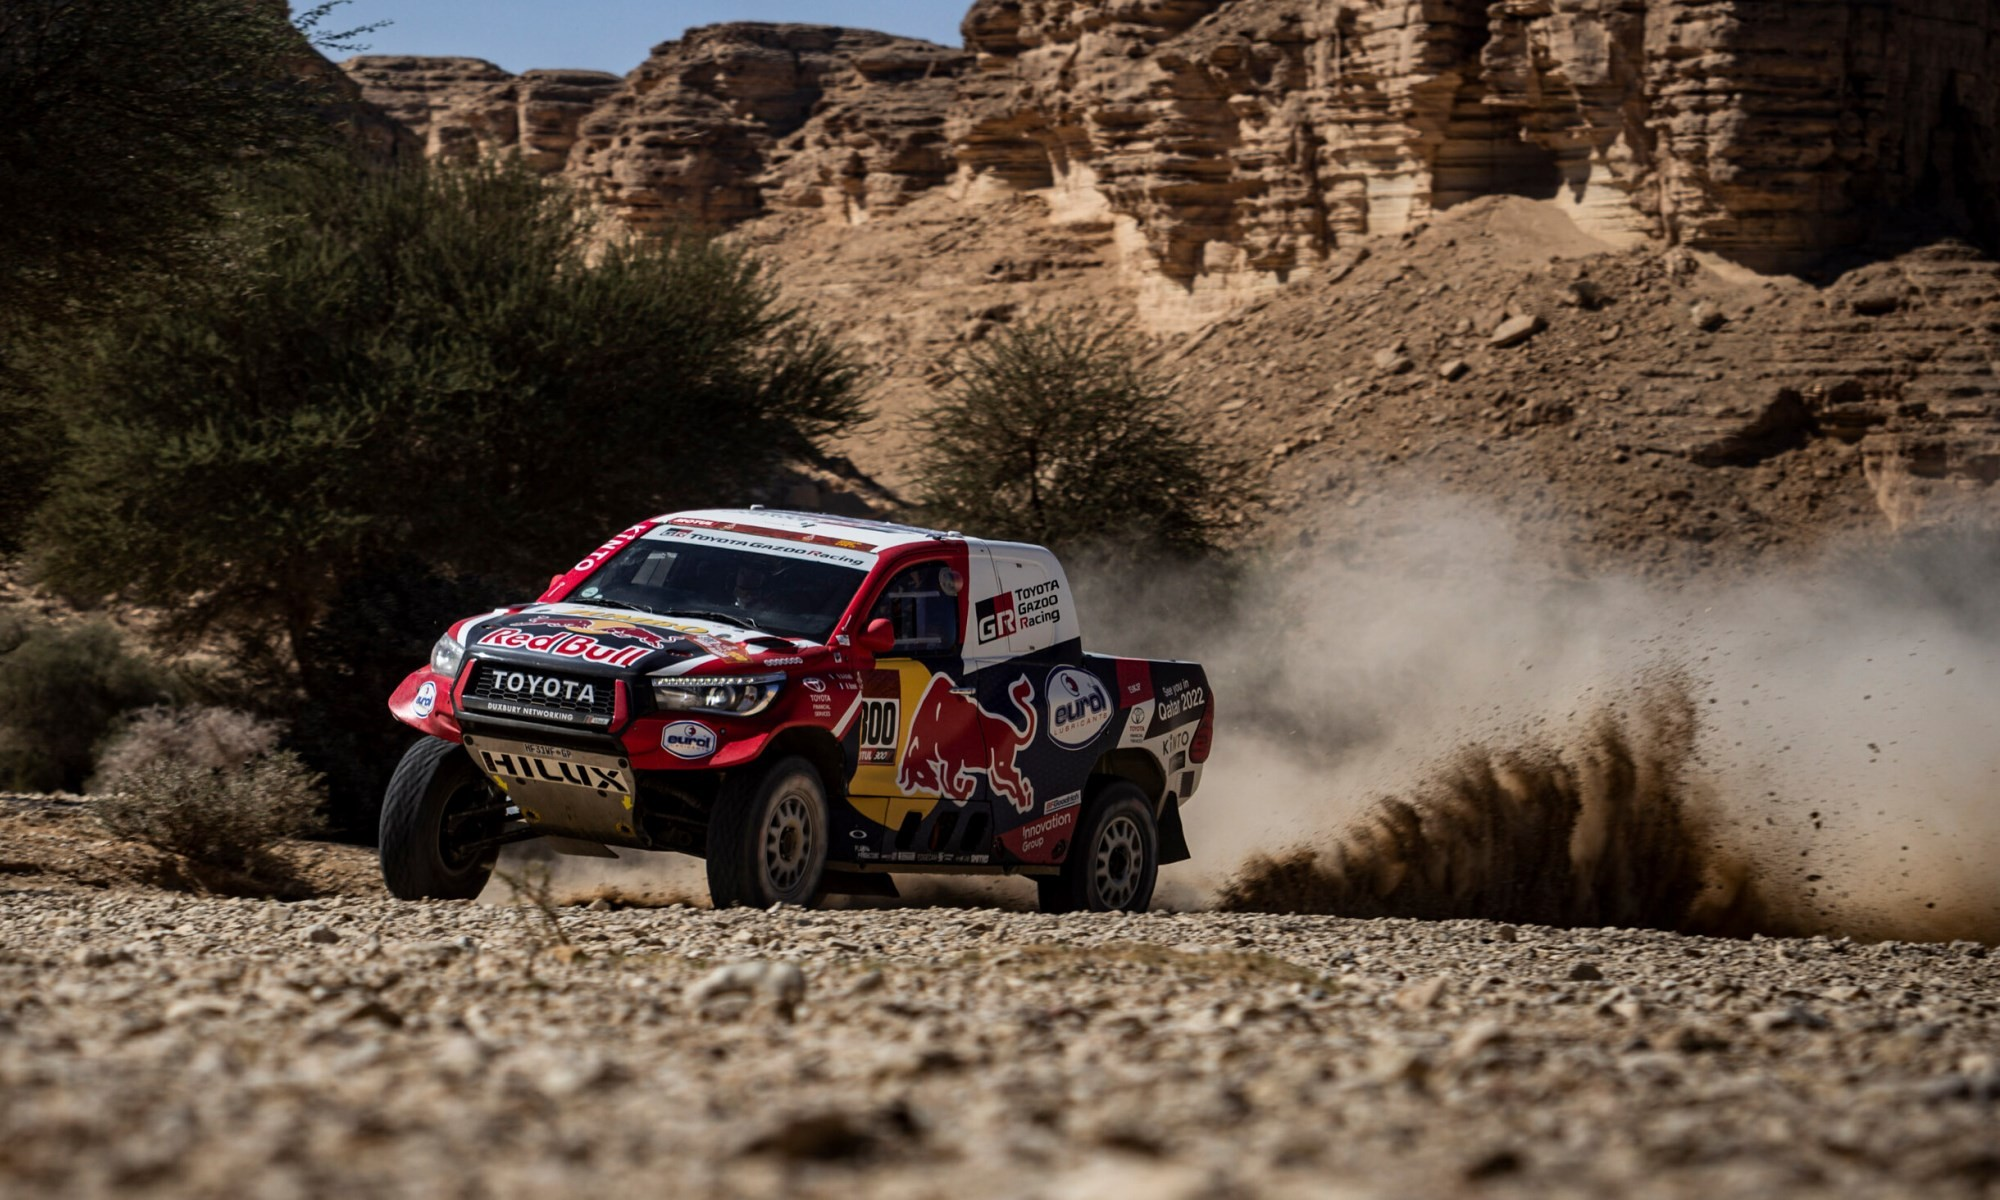 Nasser Al-Attiyah closed the gap to the overall leader on 2020 Dakar Stage 9